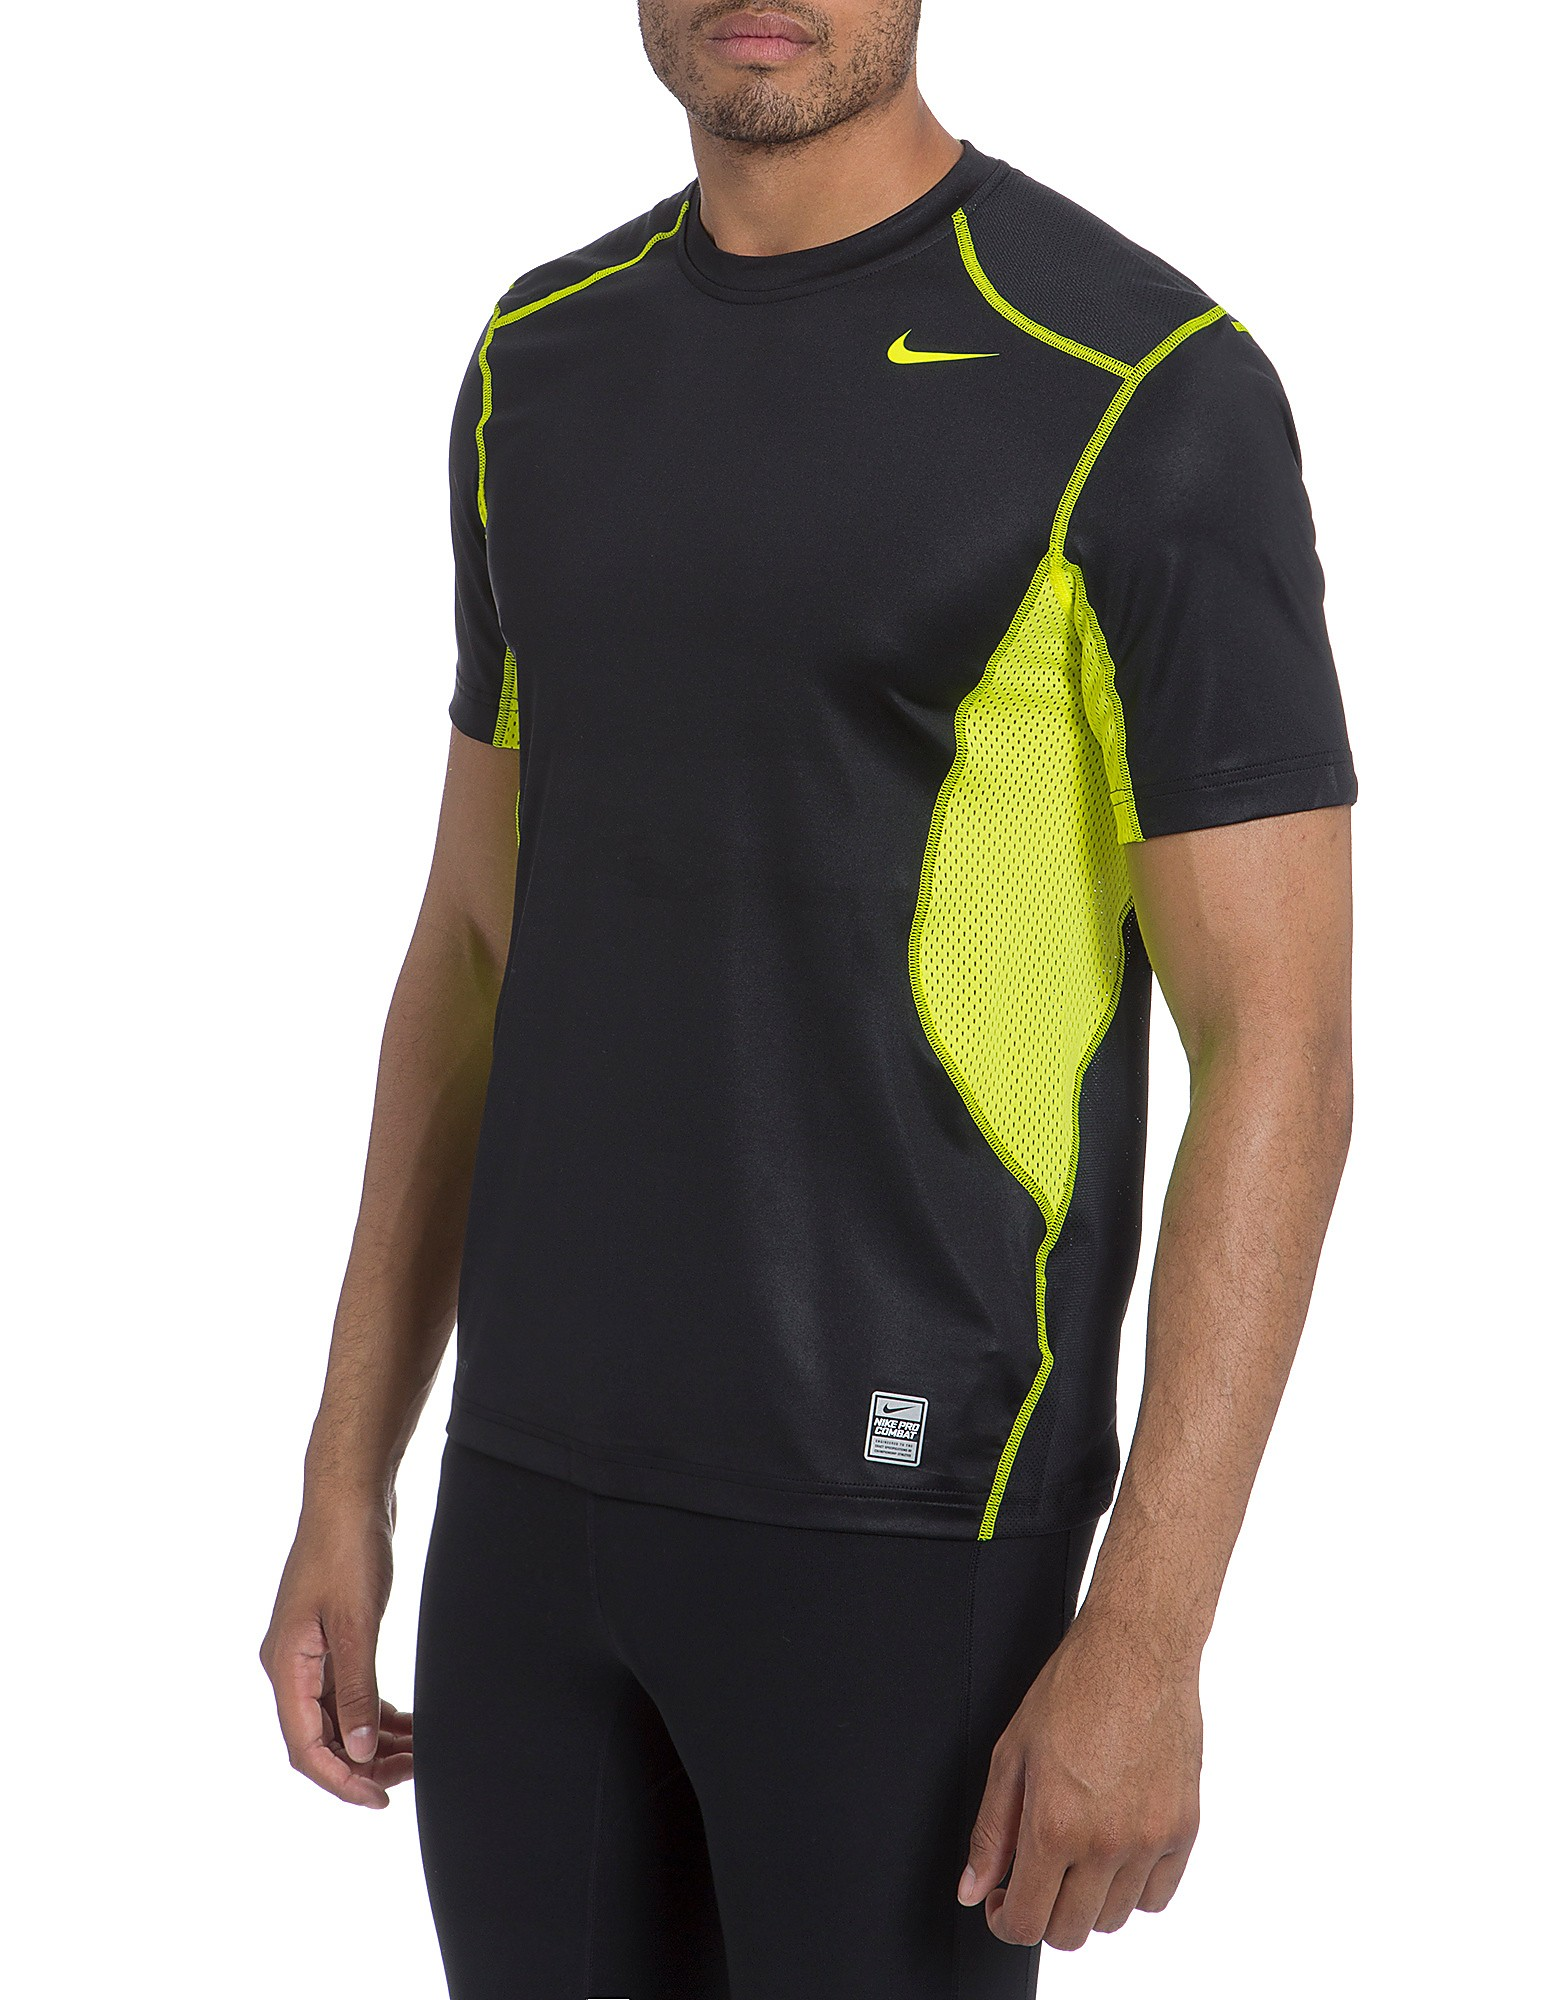 Nike Hypercool Fit T-Shirt product image